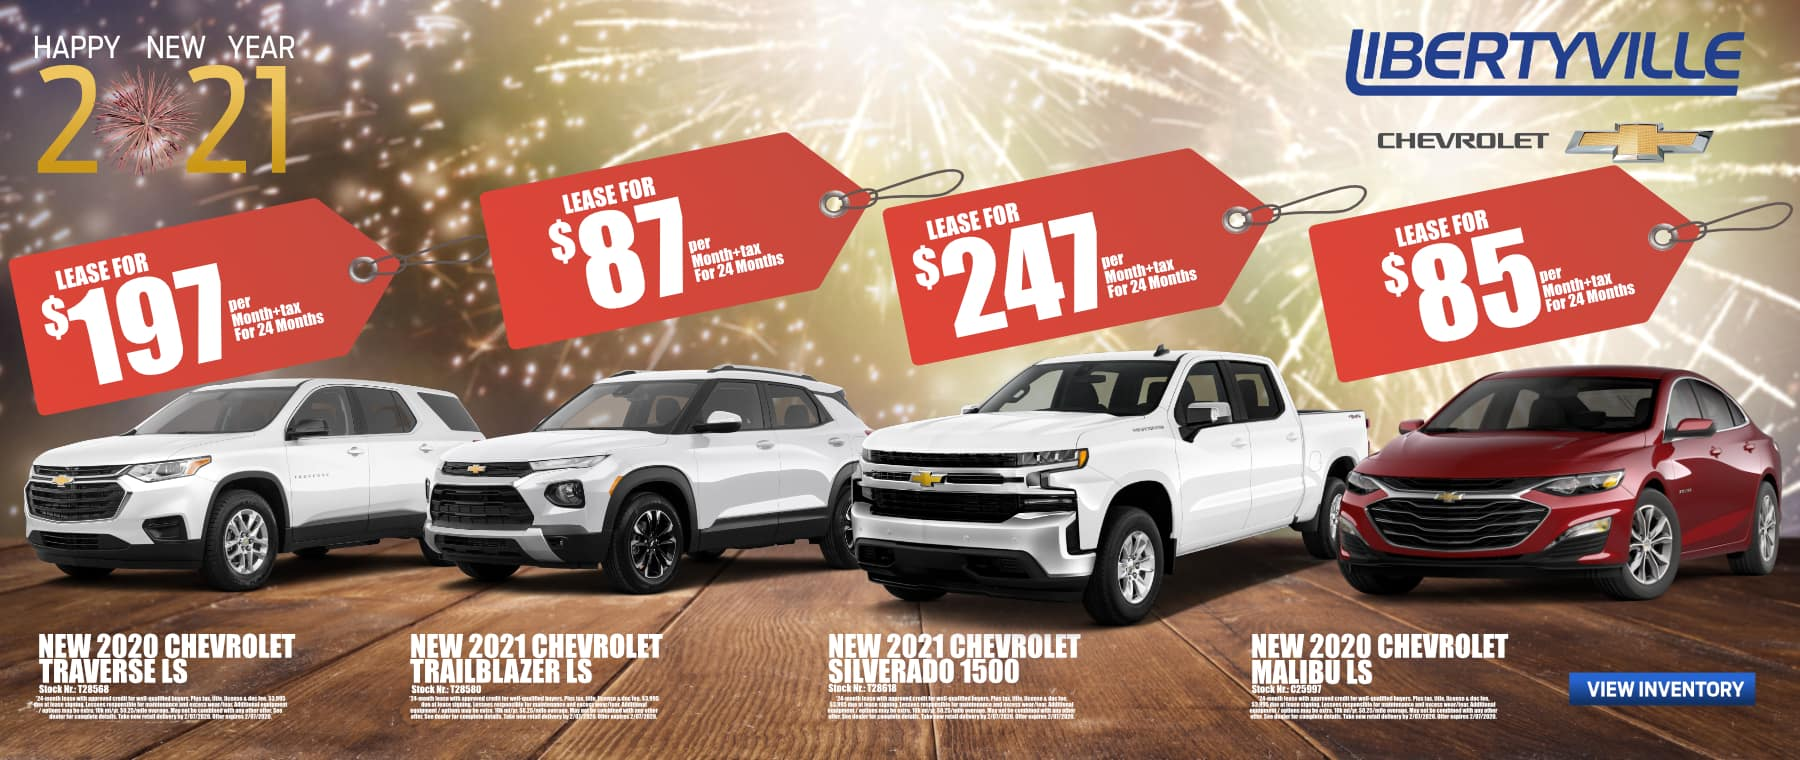 January 2021_Lease_Specials_Libertyville Chevrolet_2020_SONIC